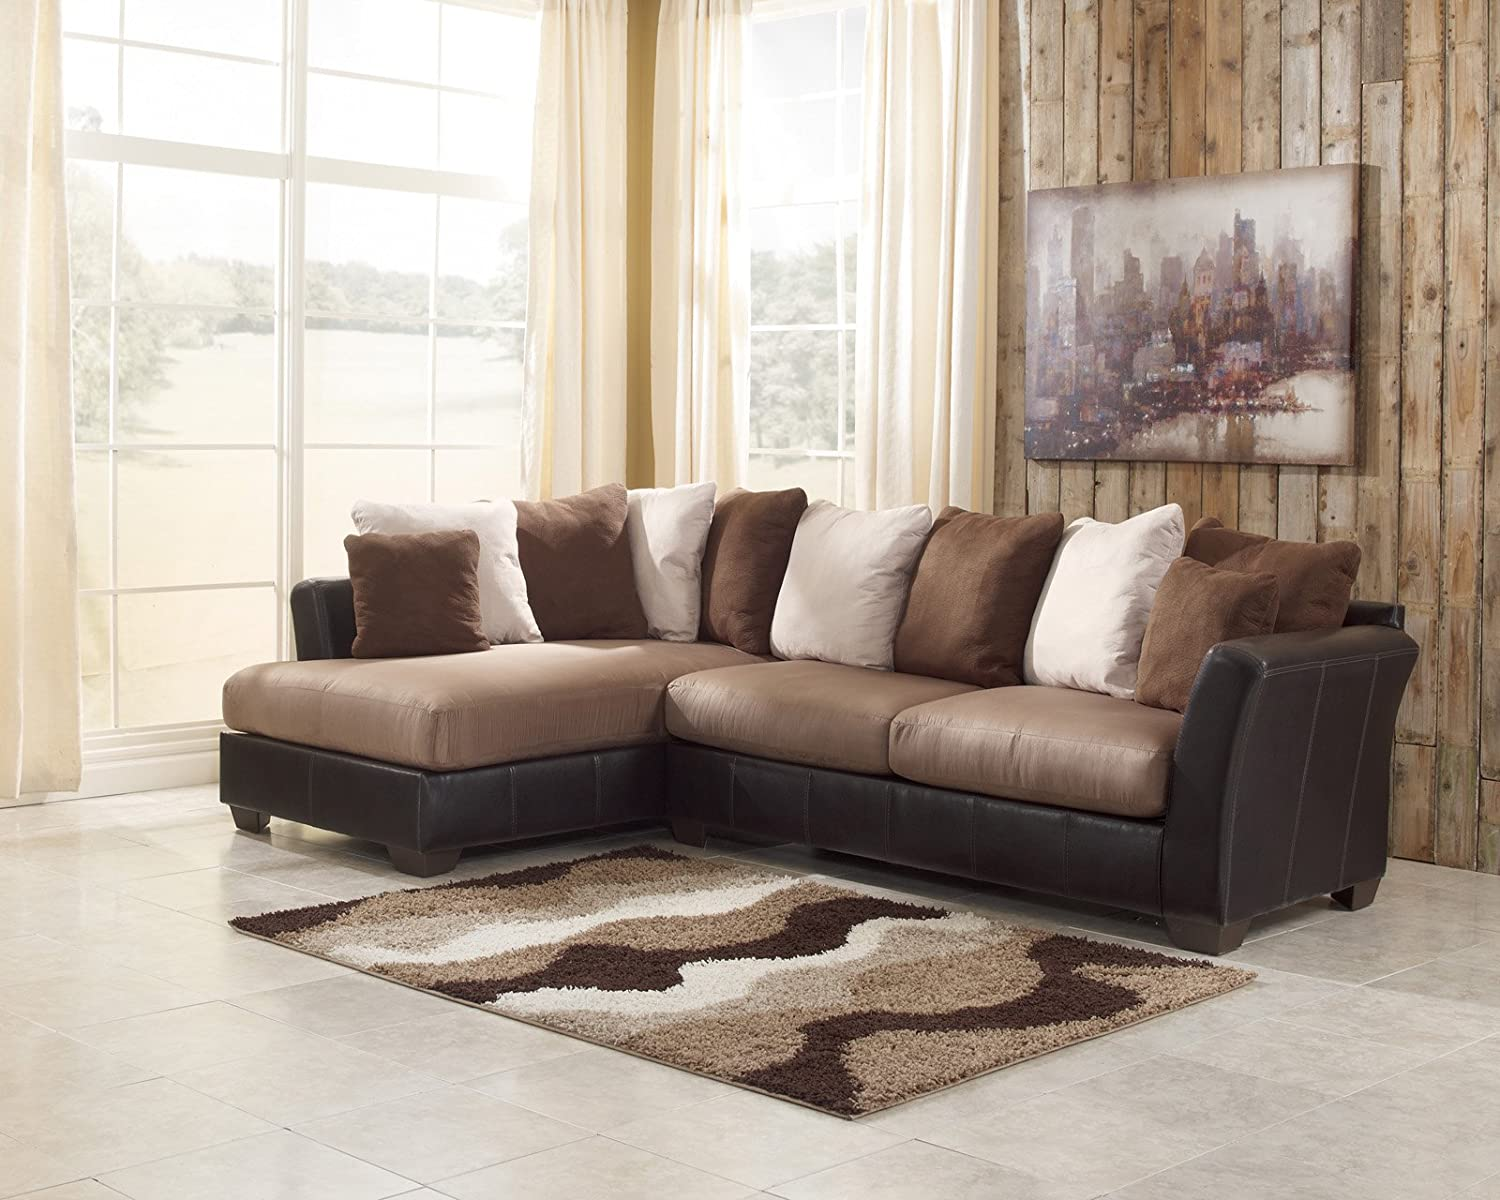 Ashley Furniture Masoli LAF Corner Chaise in Mocha